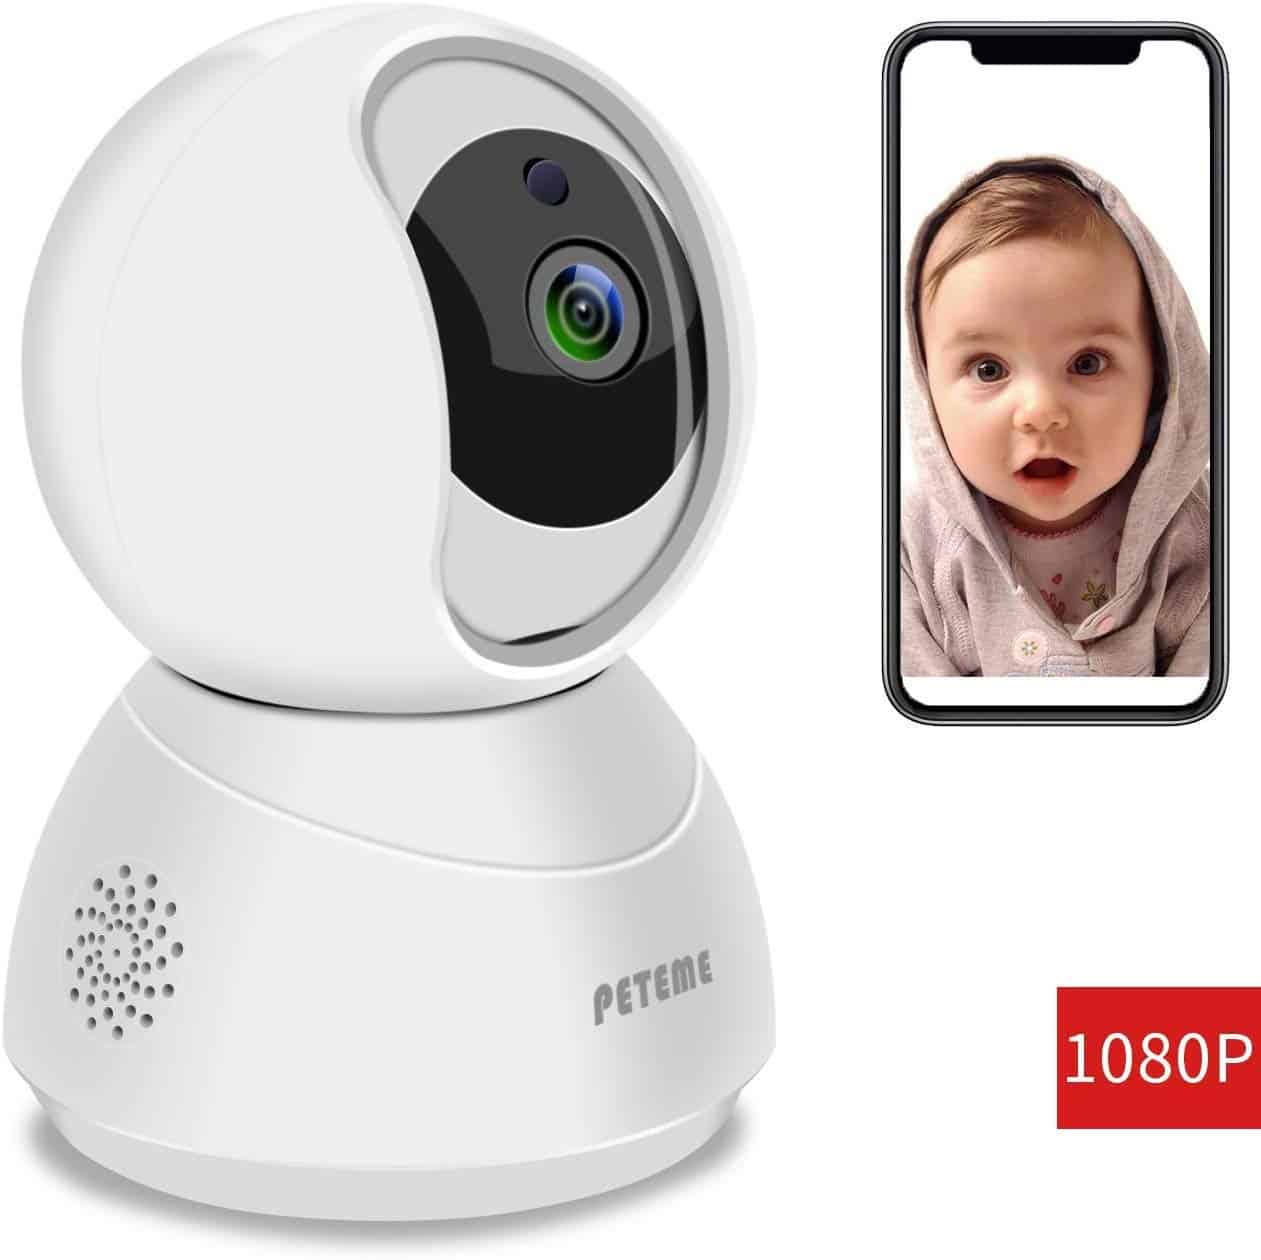 Peteme Video Baby Monitor System